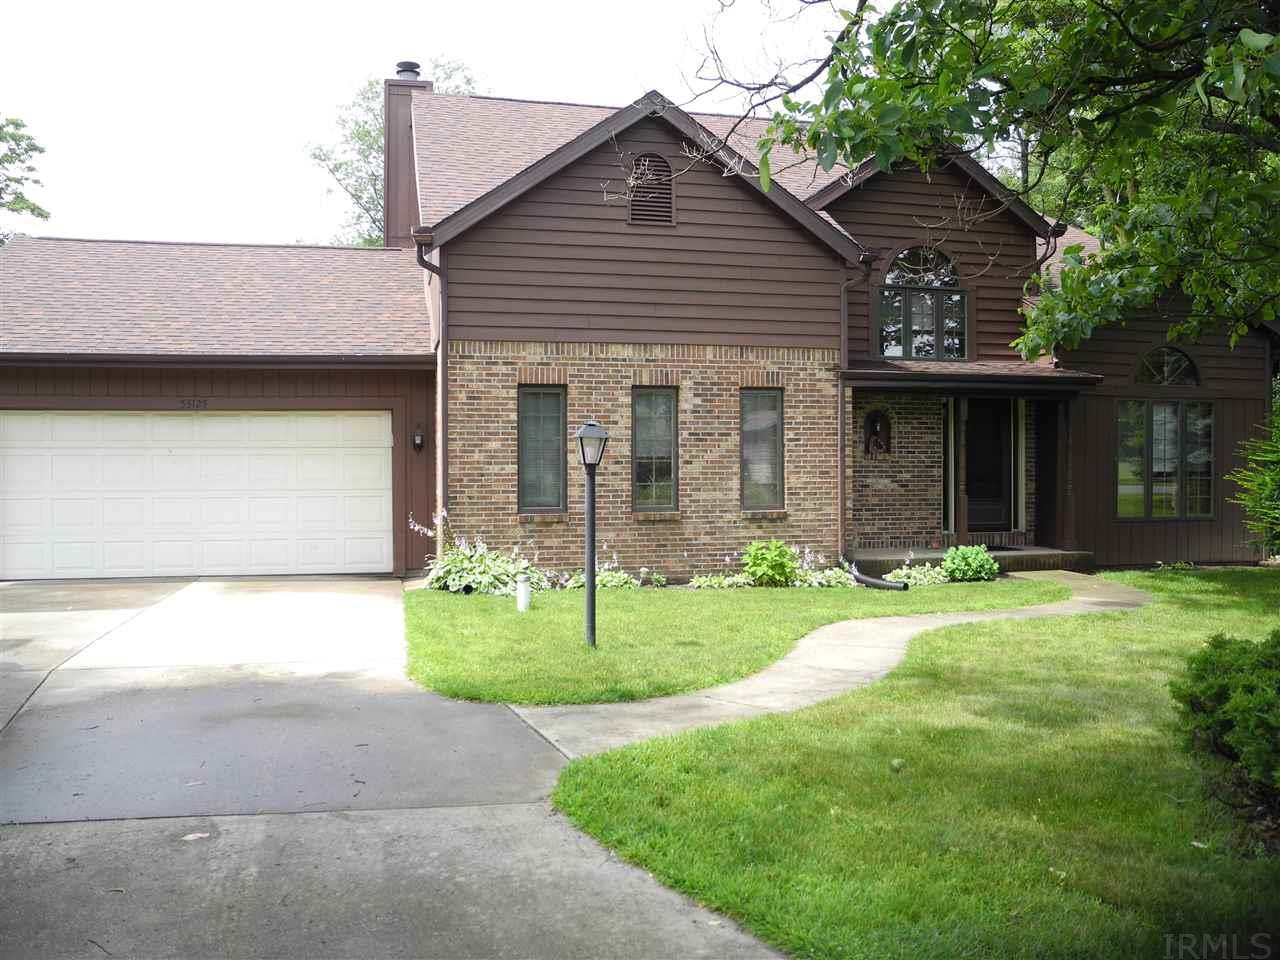 53125 COMMANCHE, South Bend, IN 46637